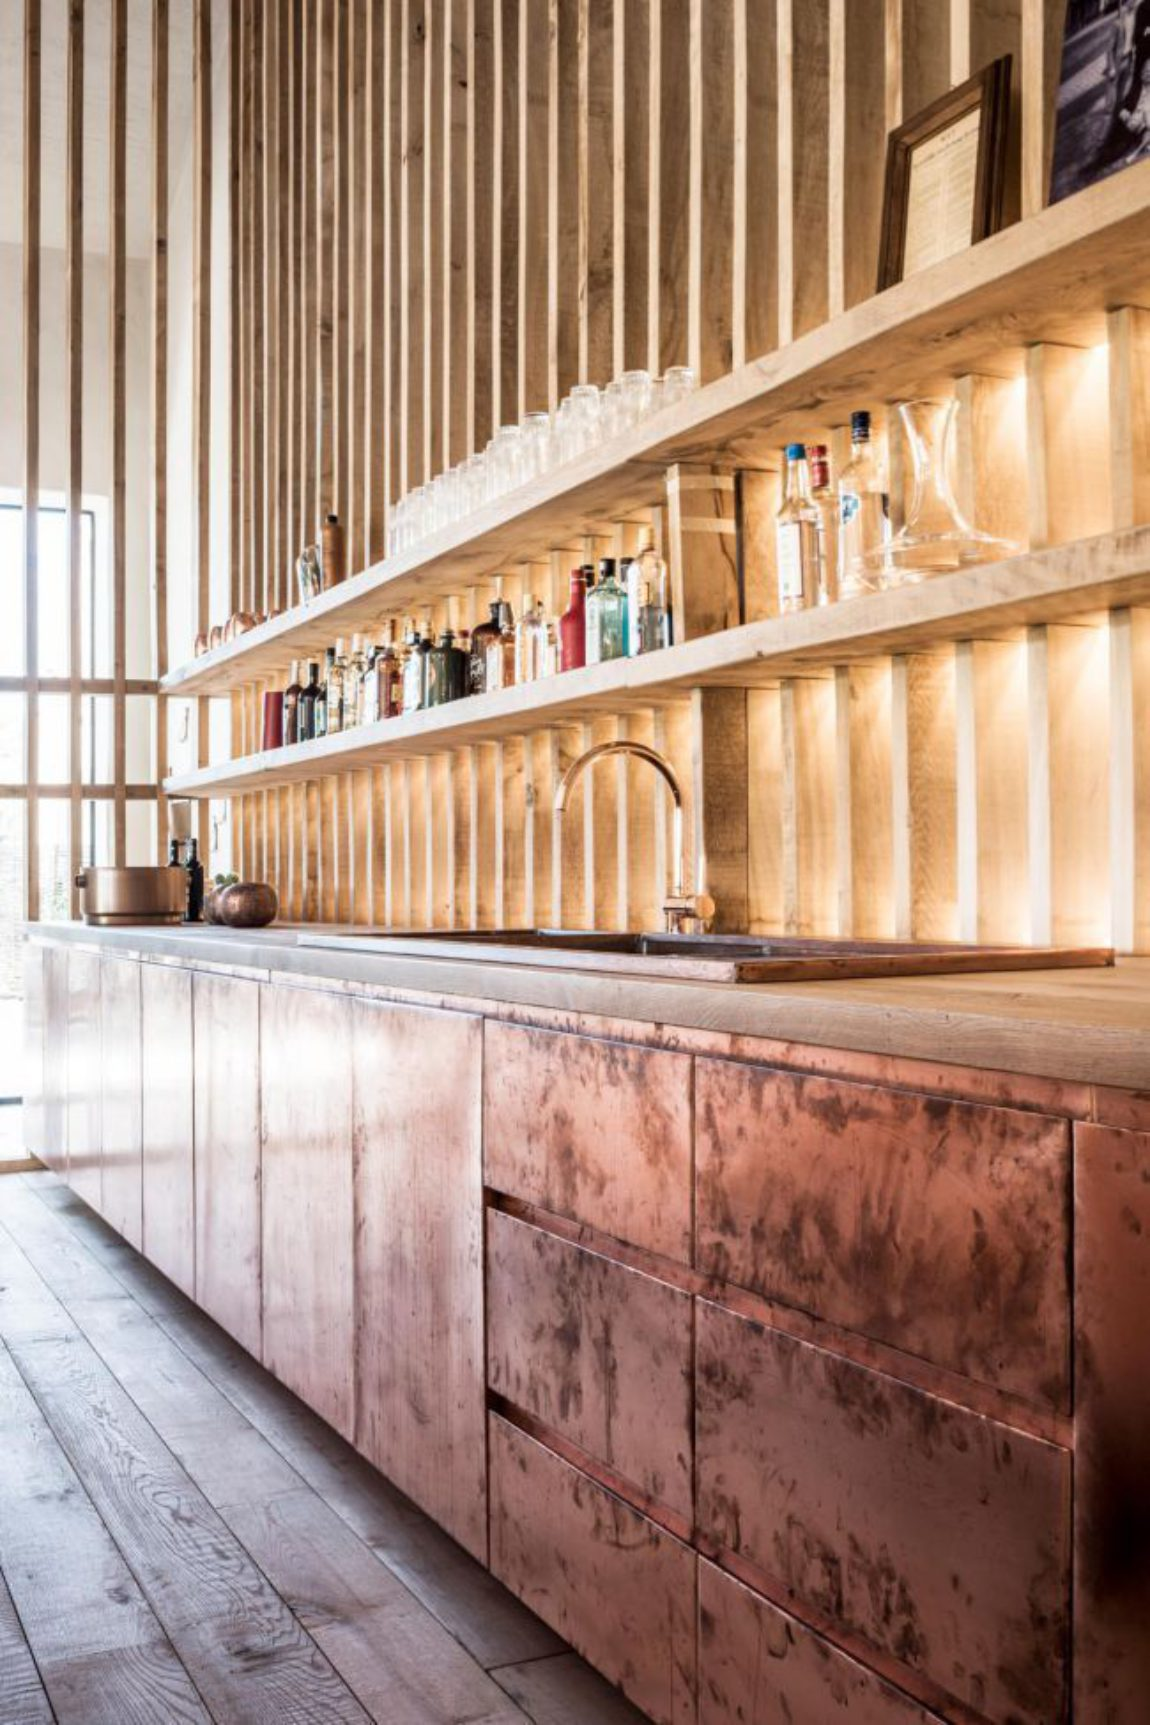 Bar koper copper kitchen patina interior design schuur barn stool light wood smoked oak gerookte eik booze bottles 21